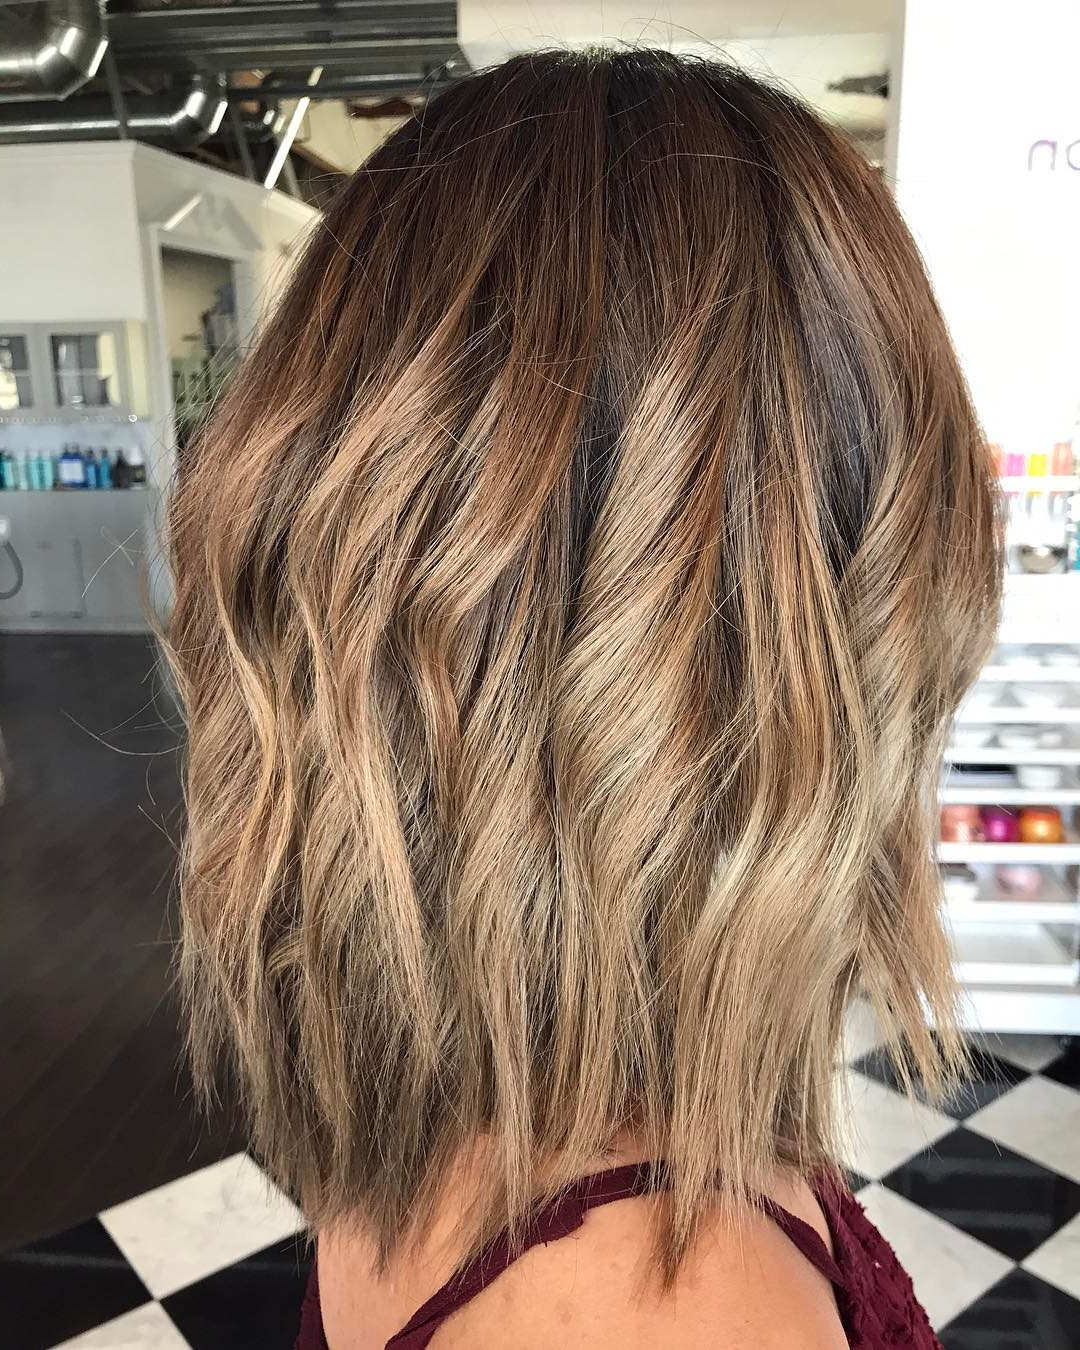 10 Layered Bob Hairstyles – Look Fab In New Blonde Shades! – Popular Regarding Short Bob Hairstyles With Long Edgy Layers (View 2 of 20)